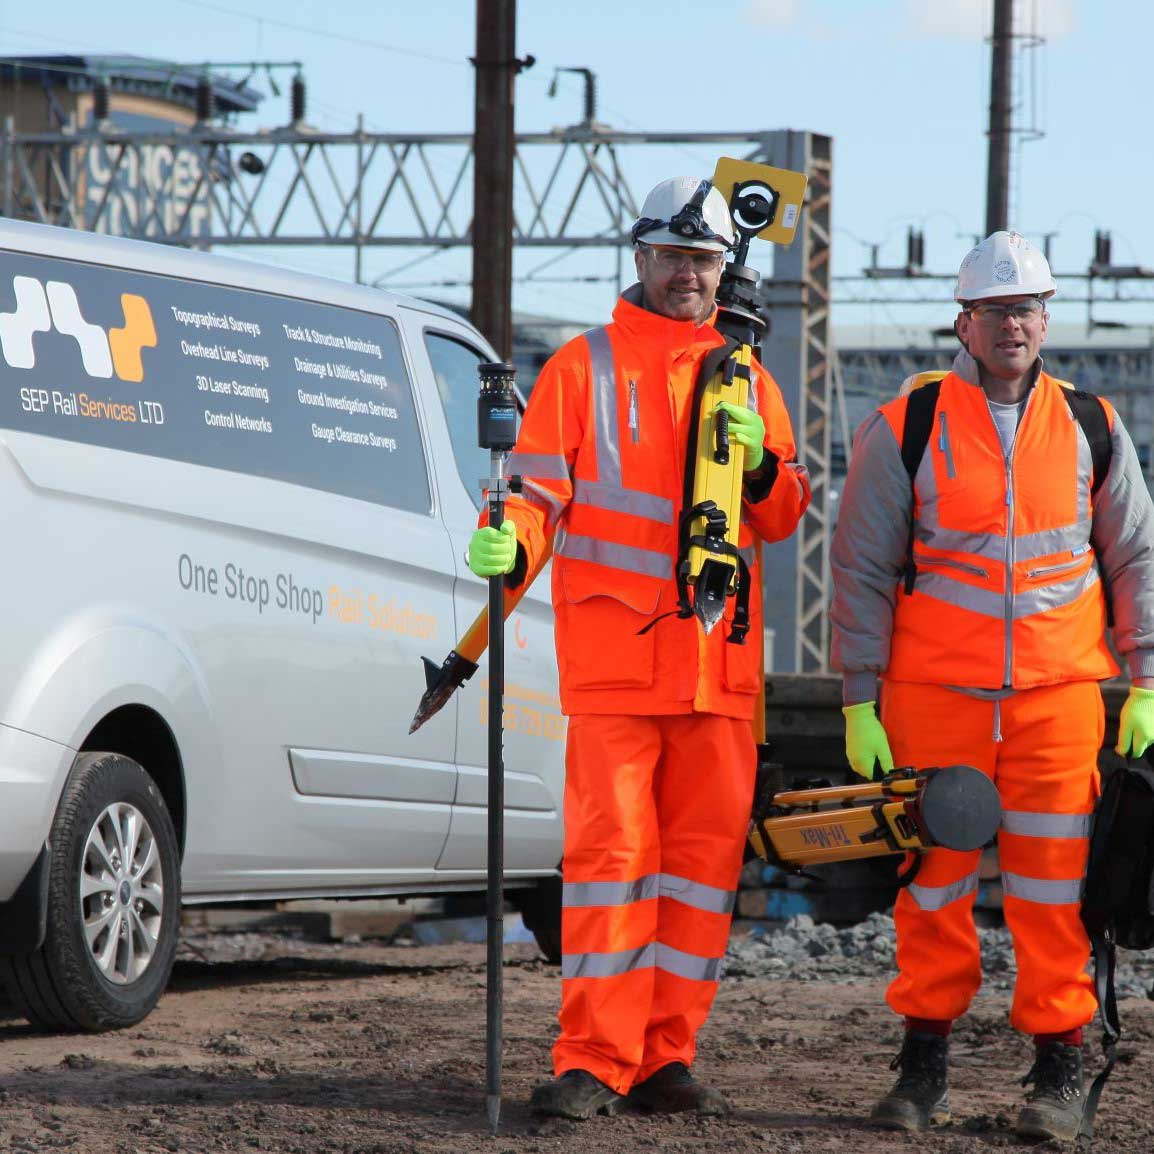 Two workers in orange high visibility clothing holding equipment to fix train rails